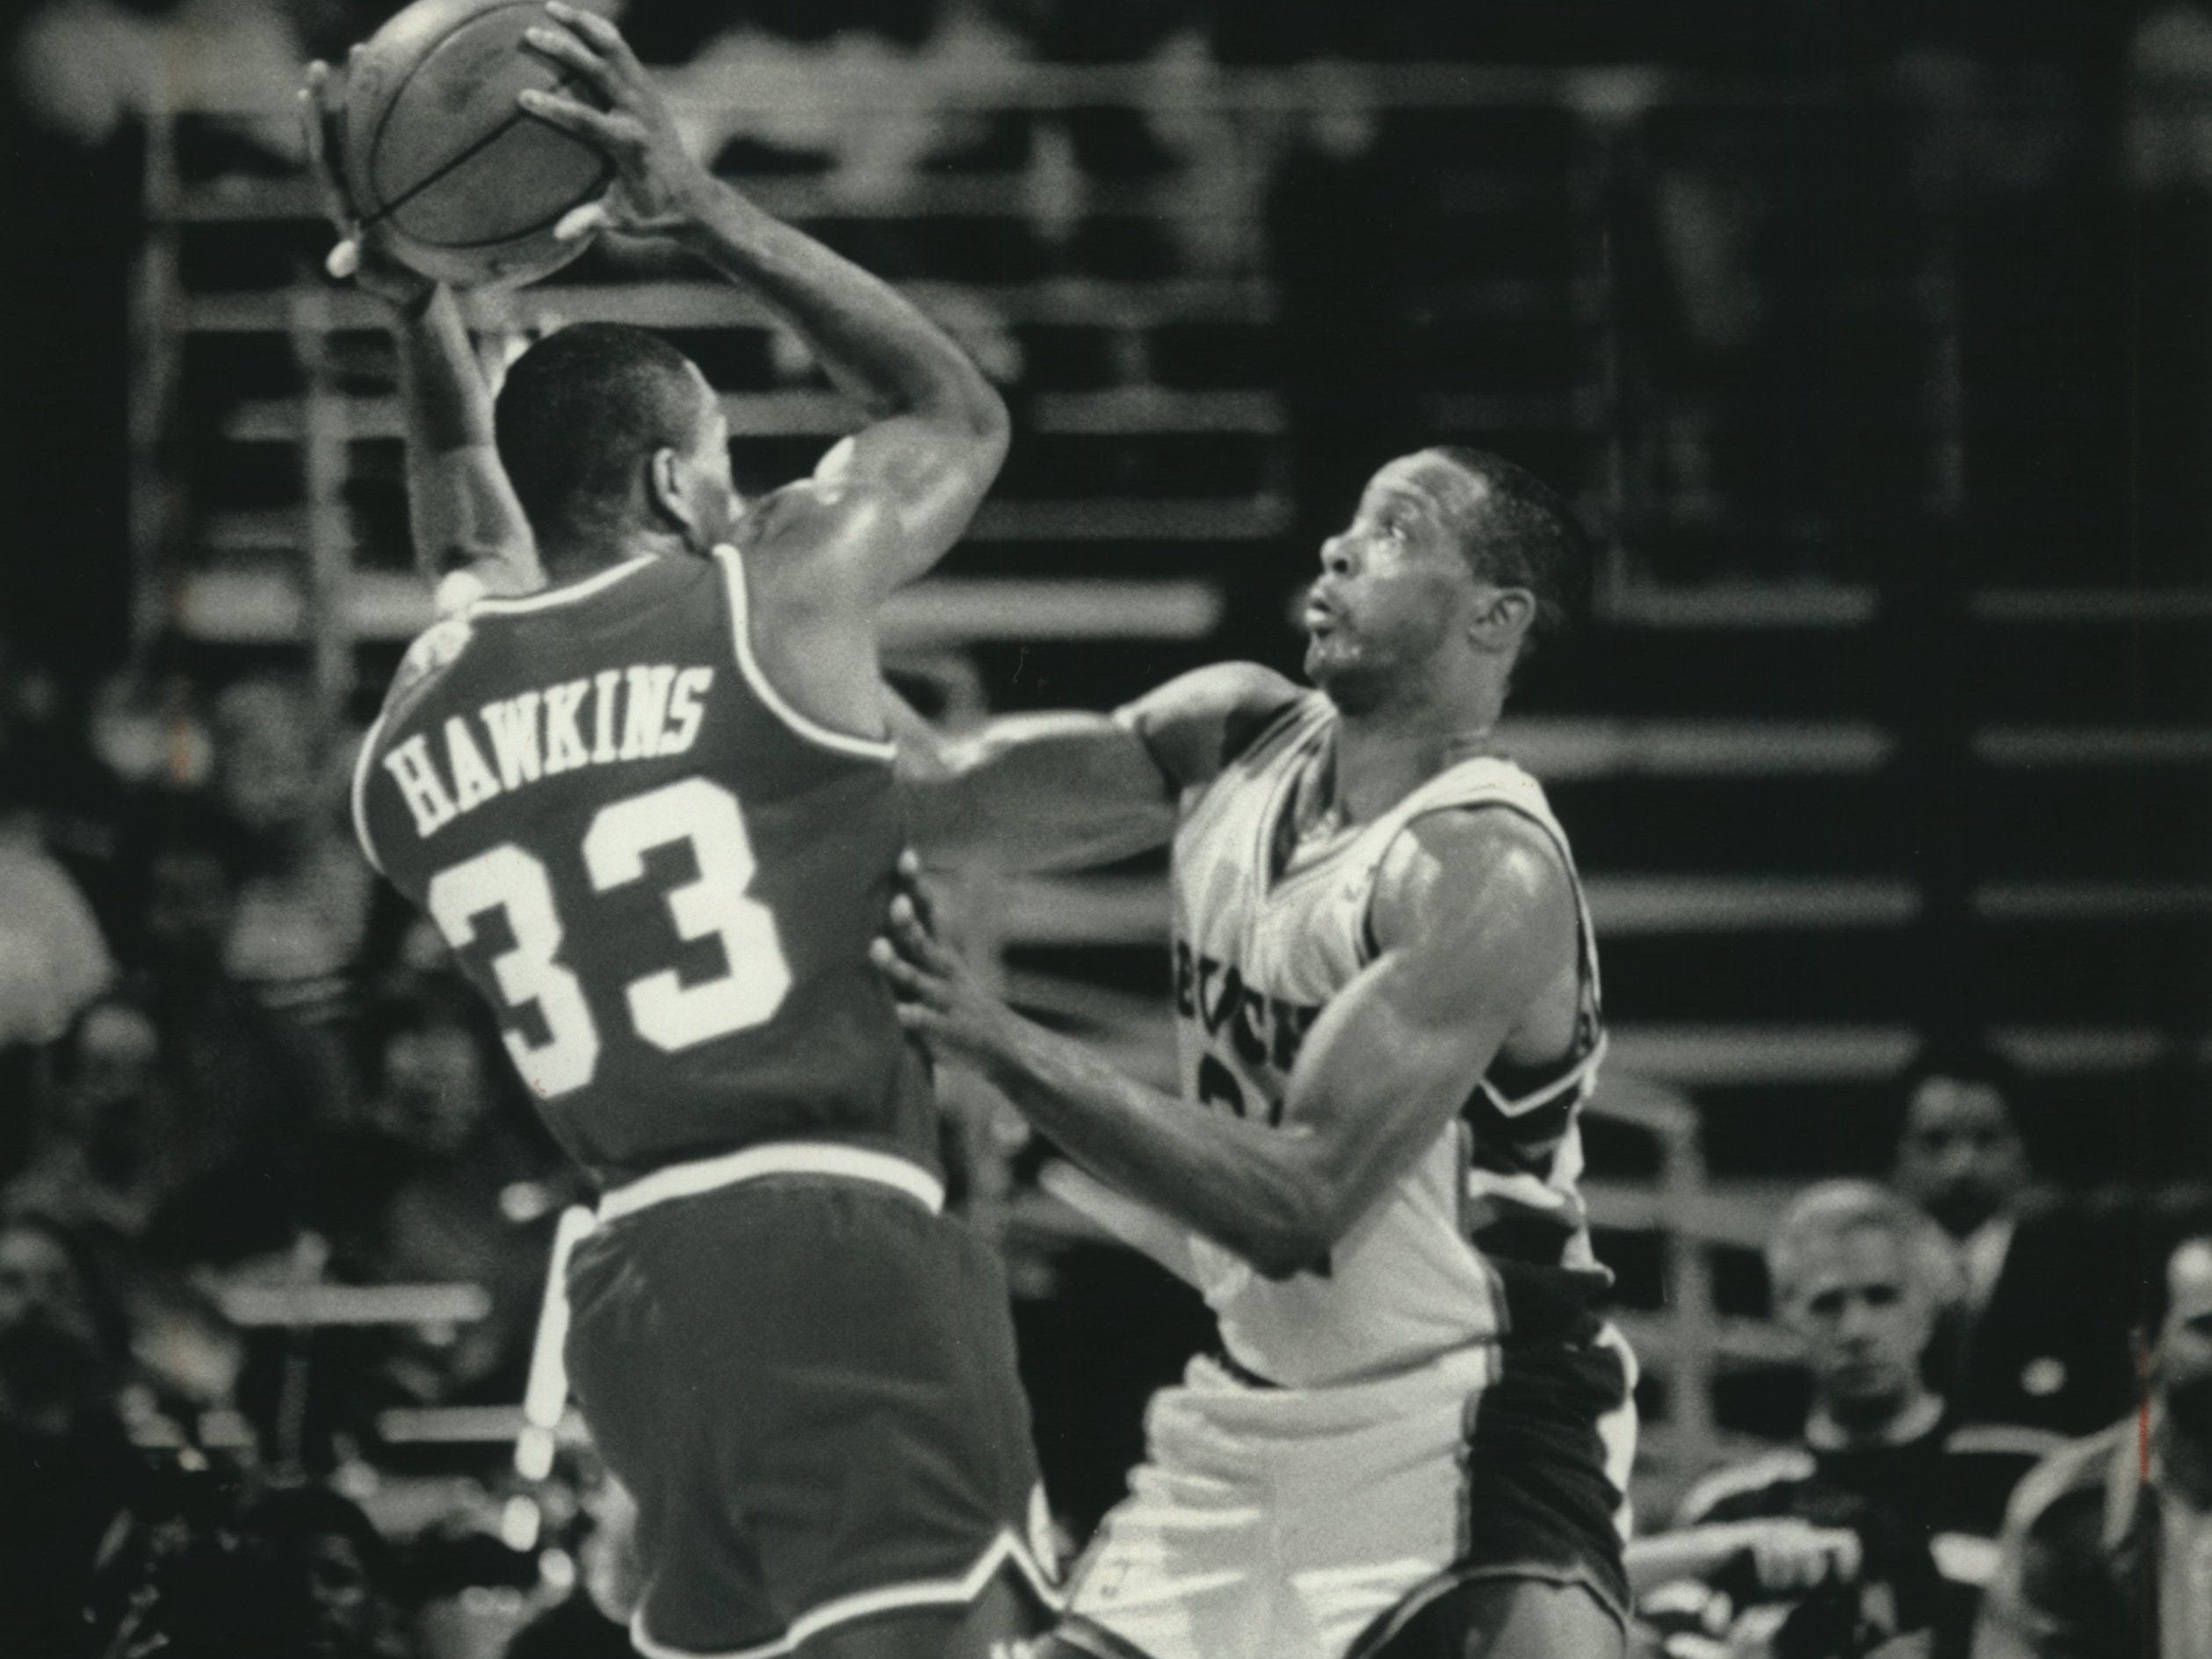 1991: Alvin Robertson pressures Philadelphia 76ers guard Hersey Hawkins during Game 2 of the first round of the Eastern Conference playoffs on April 27, 1991, at the Bradley Center. Despite Robertson's 31 points, the Sixers won the game, and swept the playoff series. This photo was published in the April 29, 1991, Milwaukee Journal.